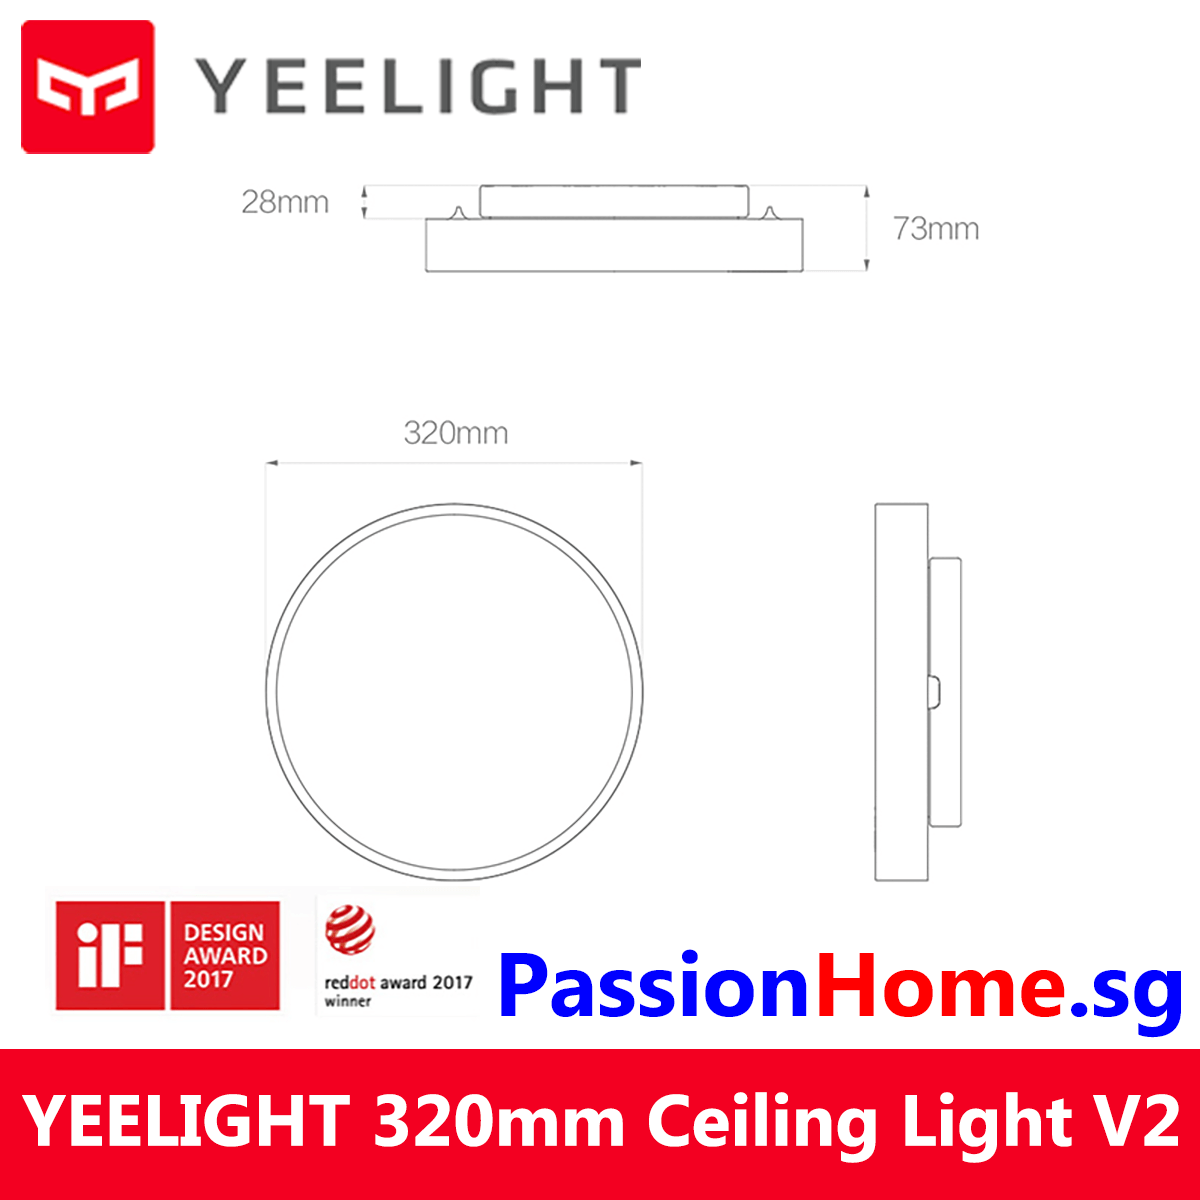 Yeelight LED Ceiling Light - Luna YLXD01YL 320mm PassionHome.sg 4